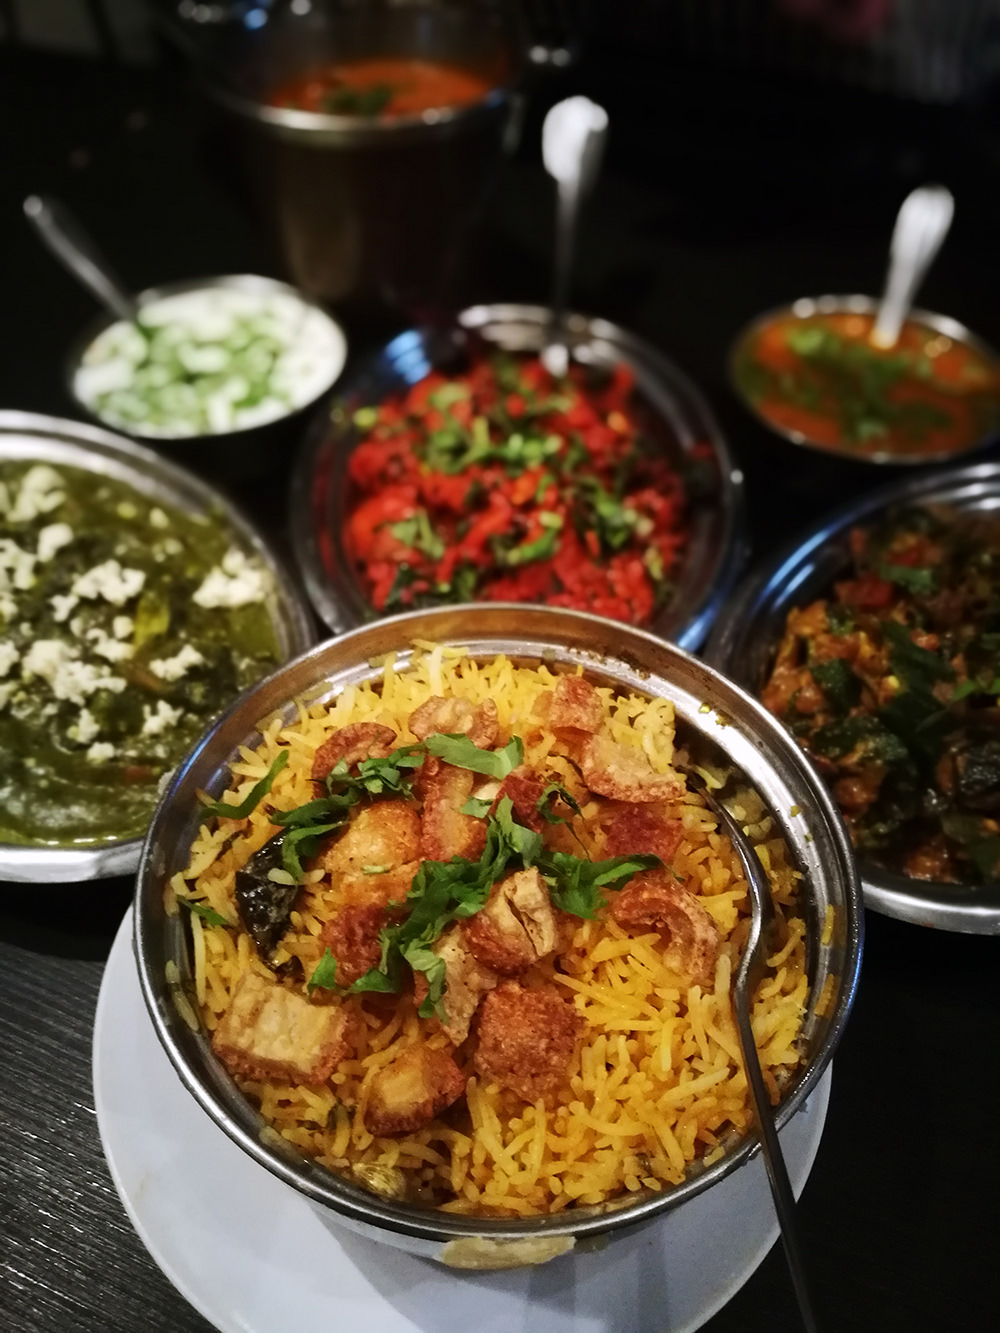 Clockwise, from middle: Siew Yoke Biryani, Palak Paneer, Pork 65 Masala, and Bindhi Masala.